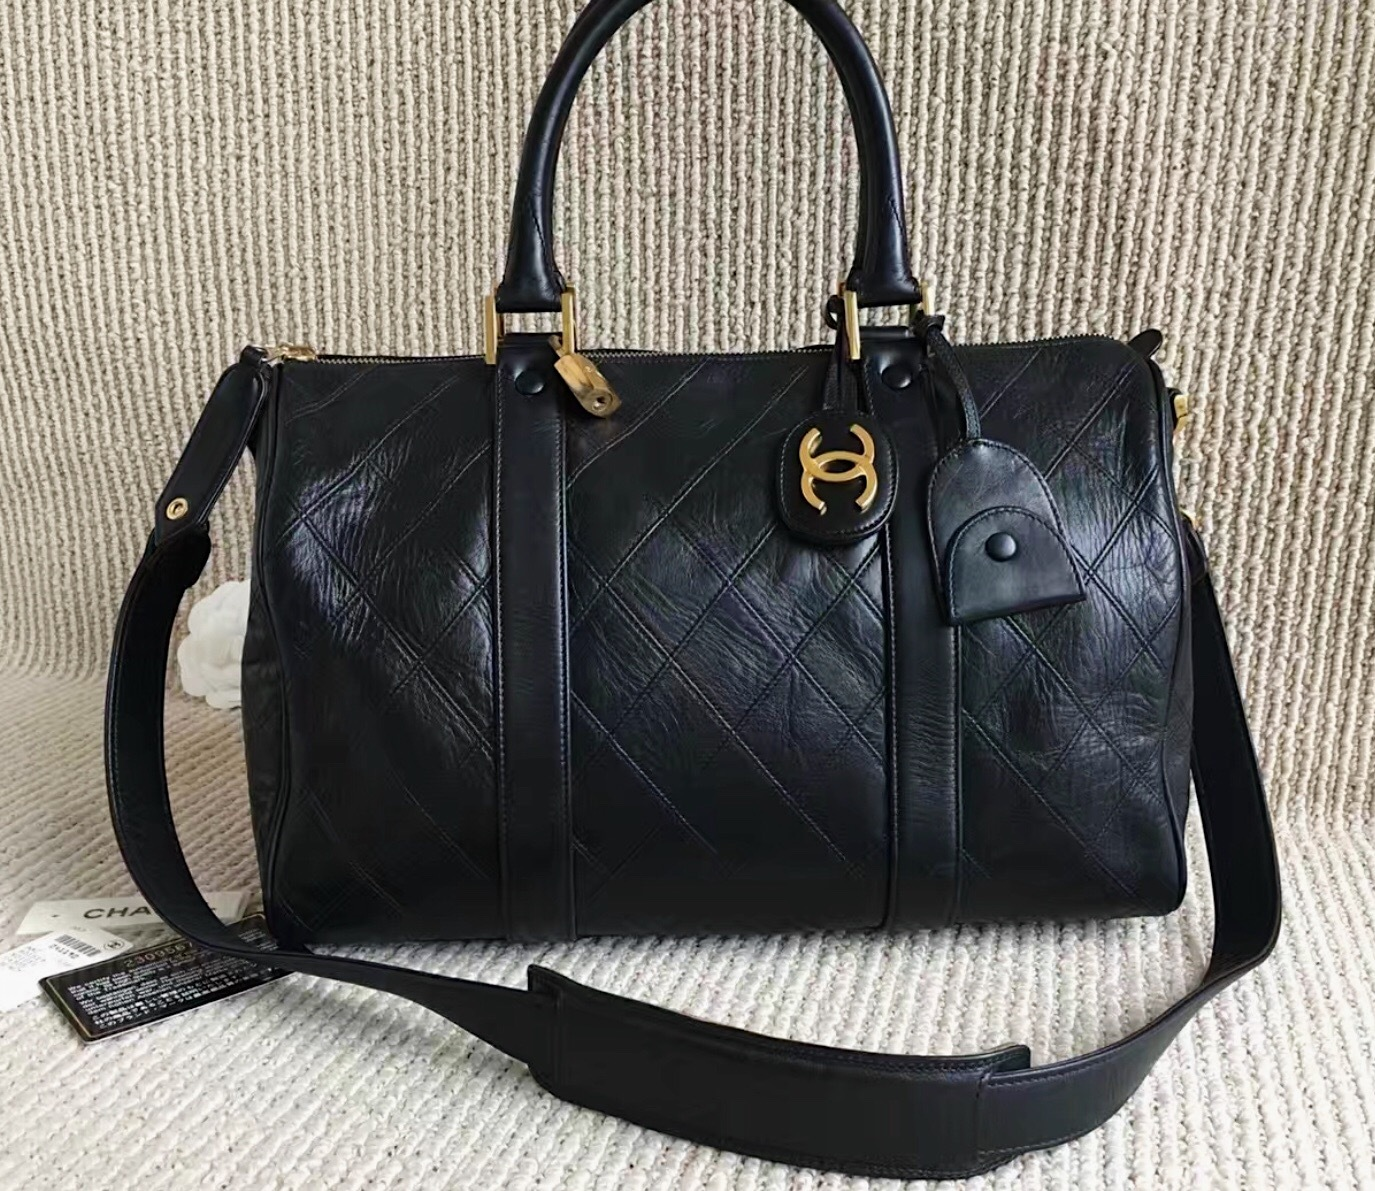 cc quilt wide chanel s quilted trim a cambon that up your tote pink light easy store itm to discount leather handbags order pick ligne receive it looking black in bag